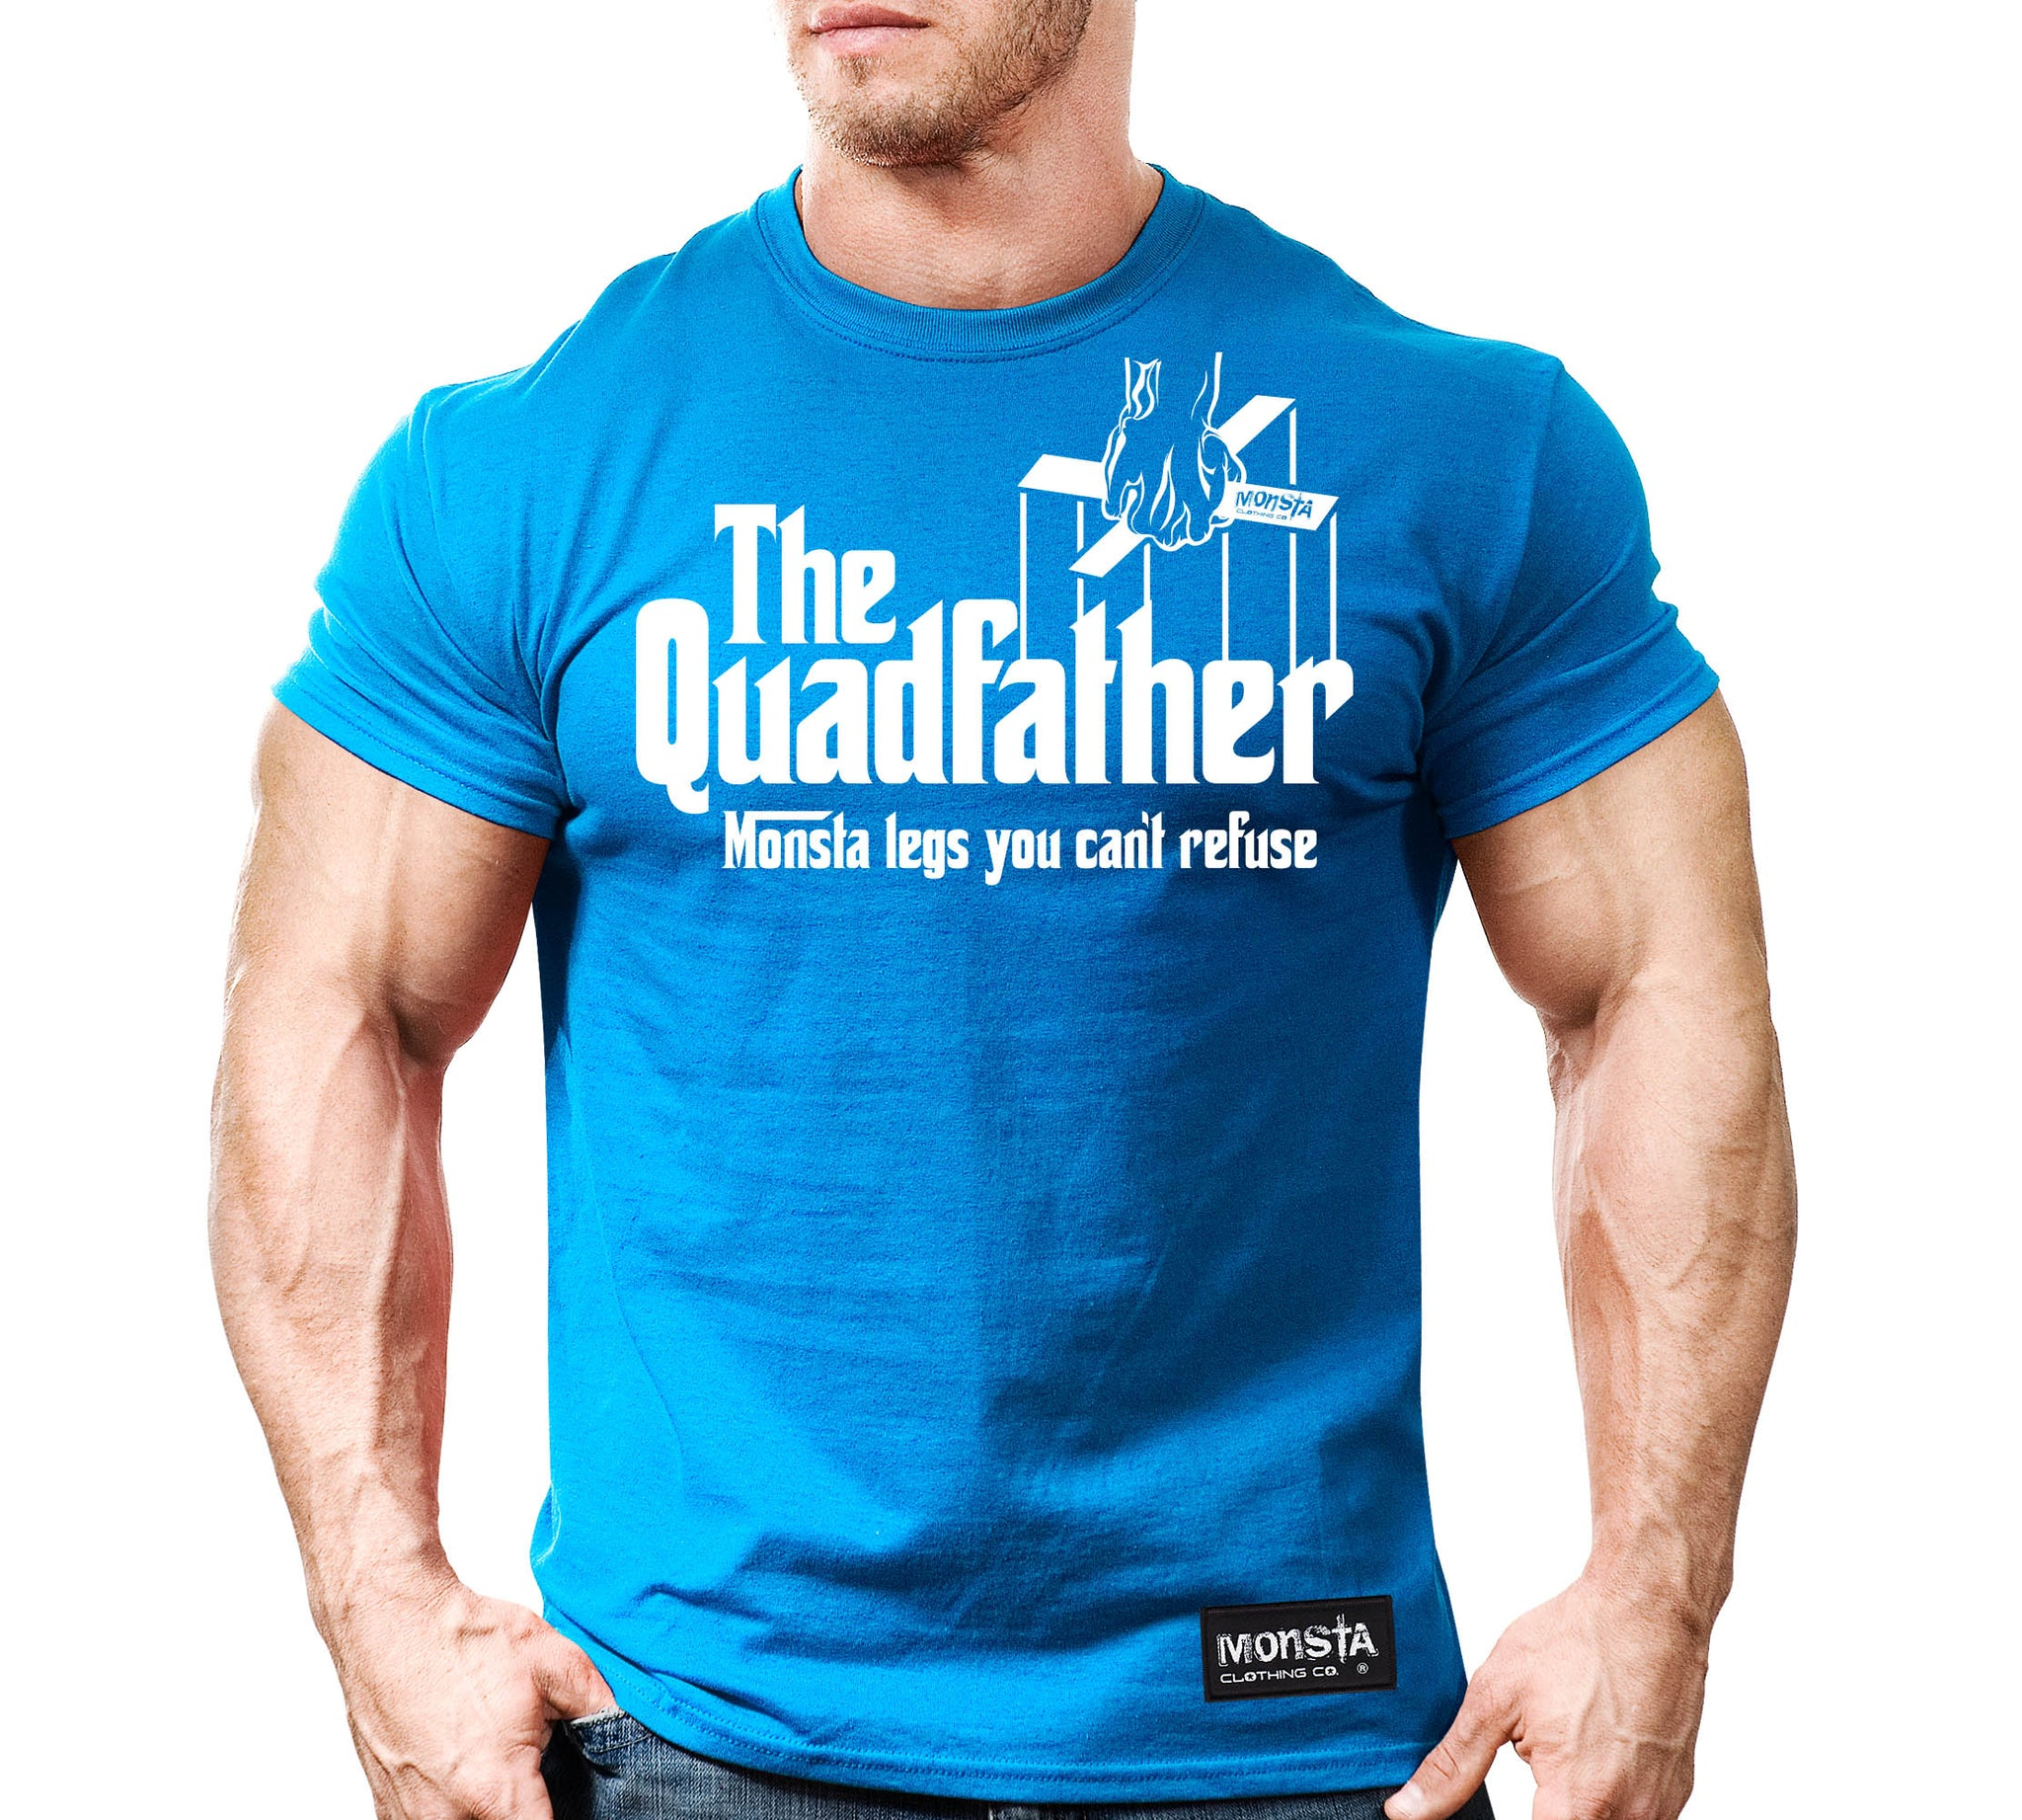 MONSTA: The QuadFather (Monsta Legs You Can't Refuse)-306 - Monsta Clothing Australia